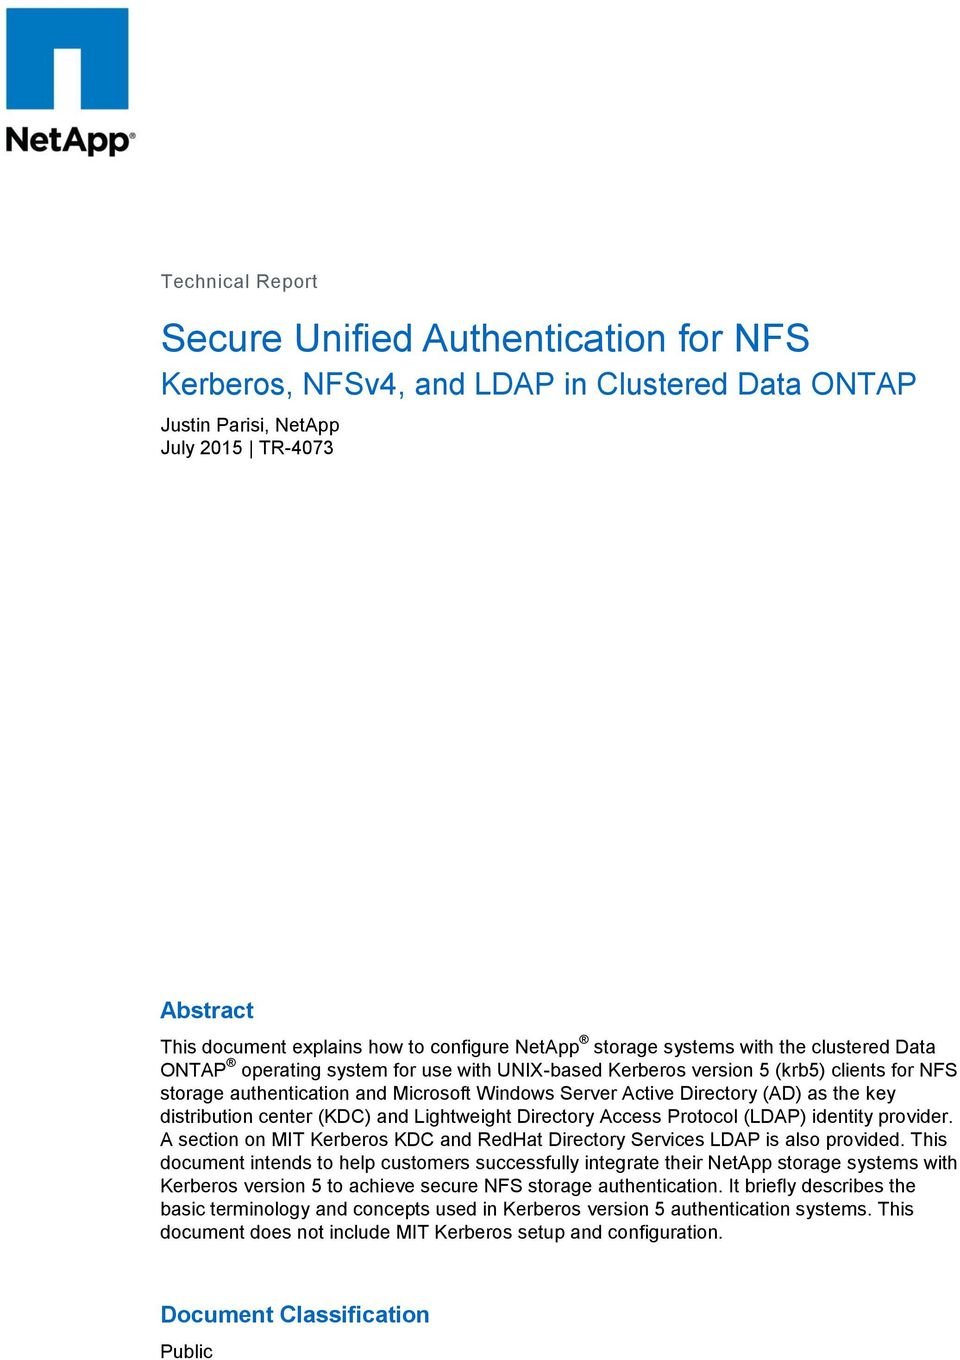 Secure Unified Authentication for NFS - PDF